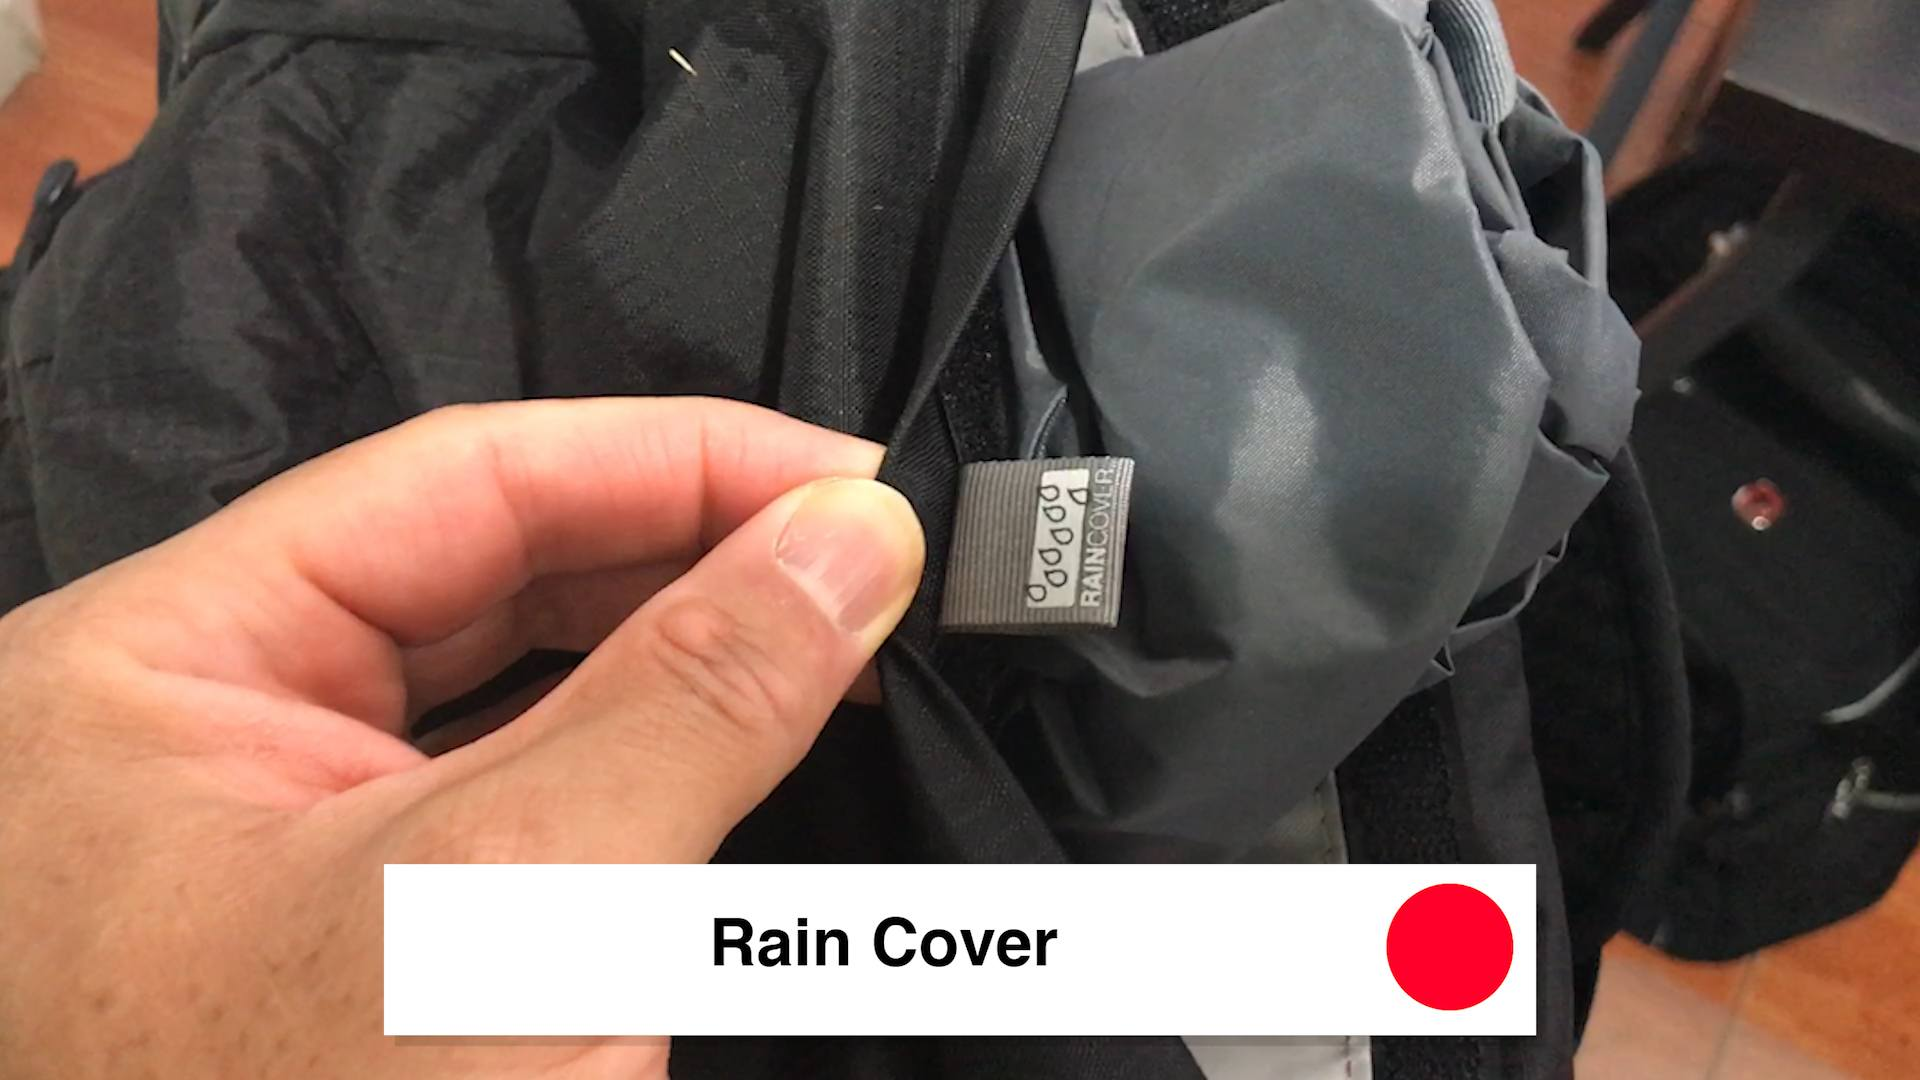 Rain Cover - Pacsafe Venturesafe X30 Travel Pack - Black Pacsafe Anti Theft Backpack